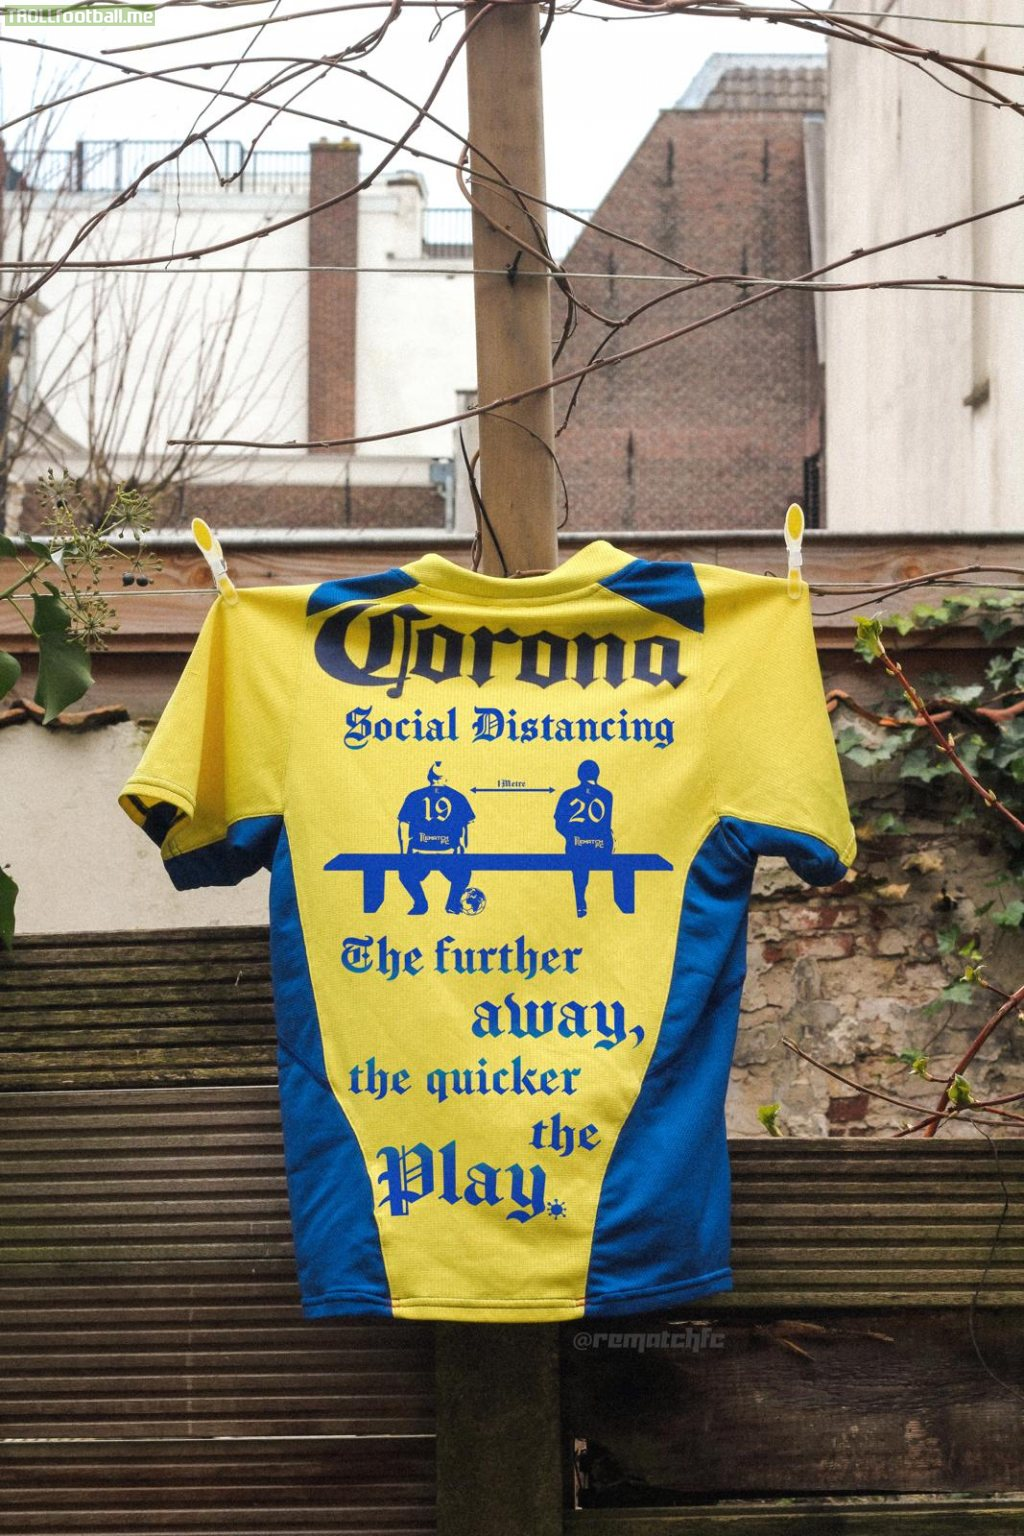 My friend repurposes classic football jerseys. In light of current events, this is how he repurposed a classic Club America jersey to share the importance of social distancing.